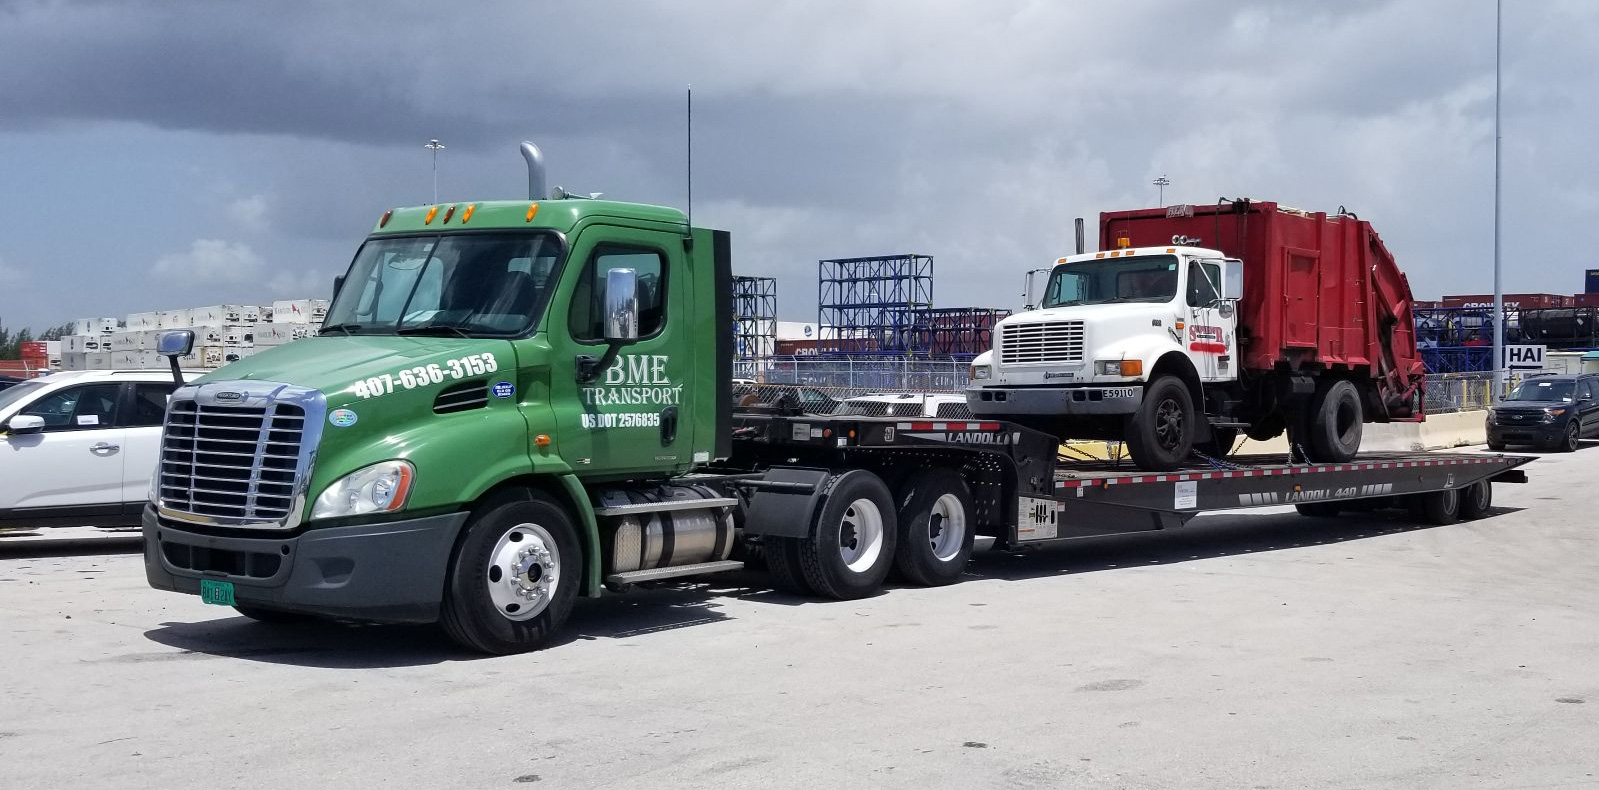 A 2003 international 4900 garbage truck loaded on a step-deck trailer